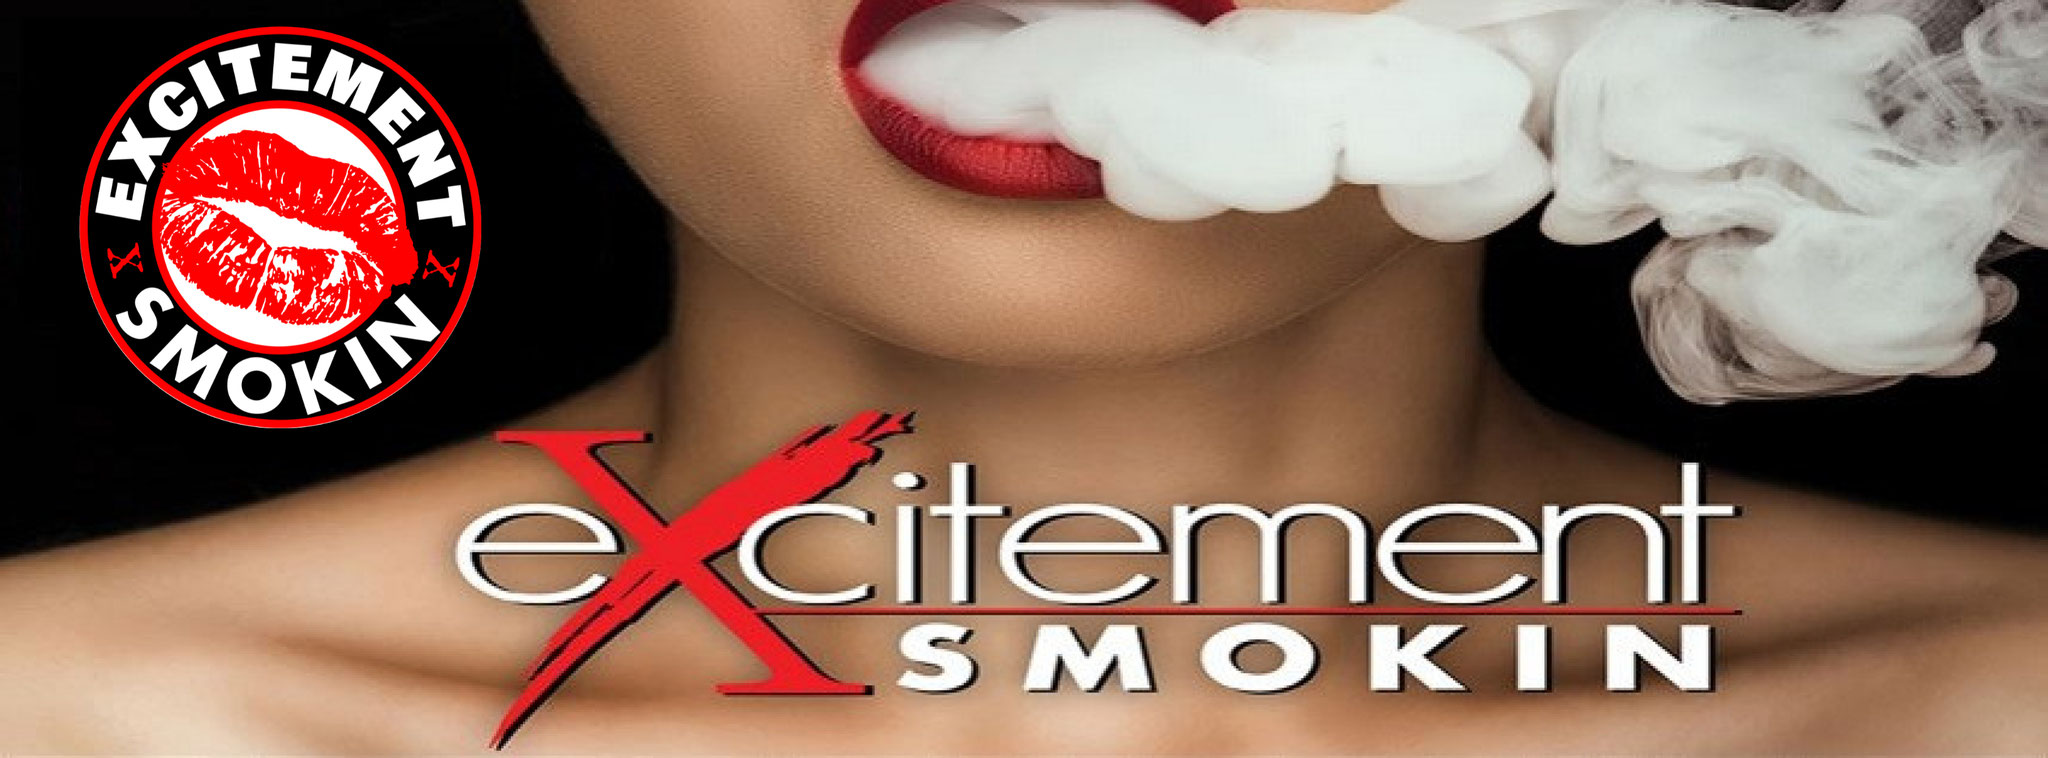 Check out our Smokin website!